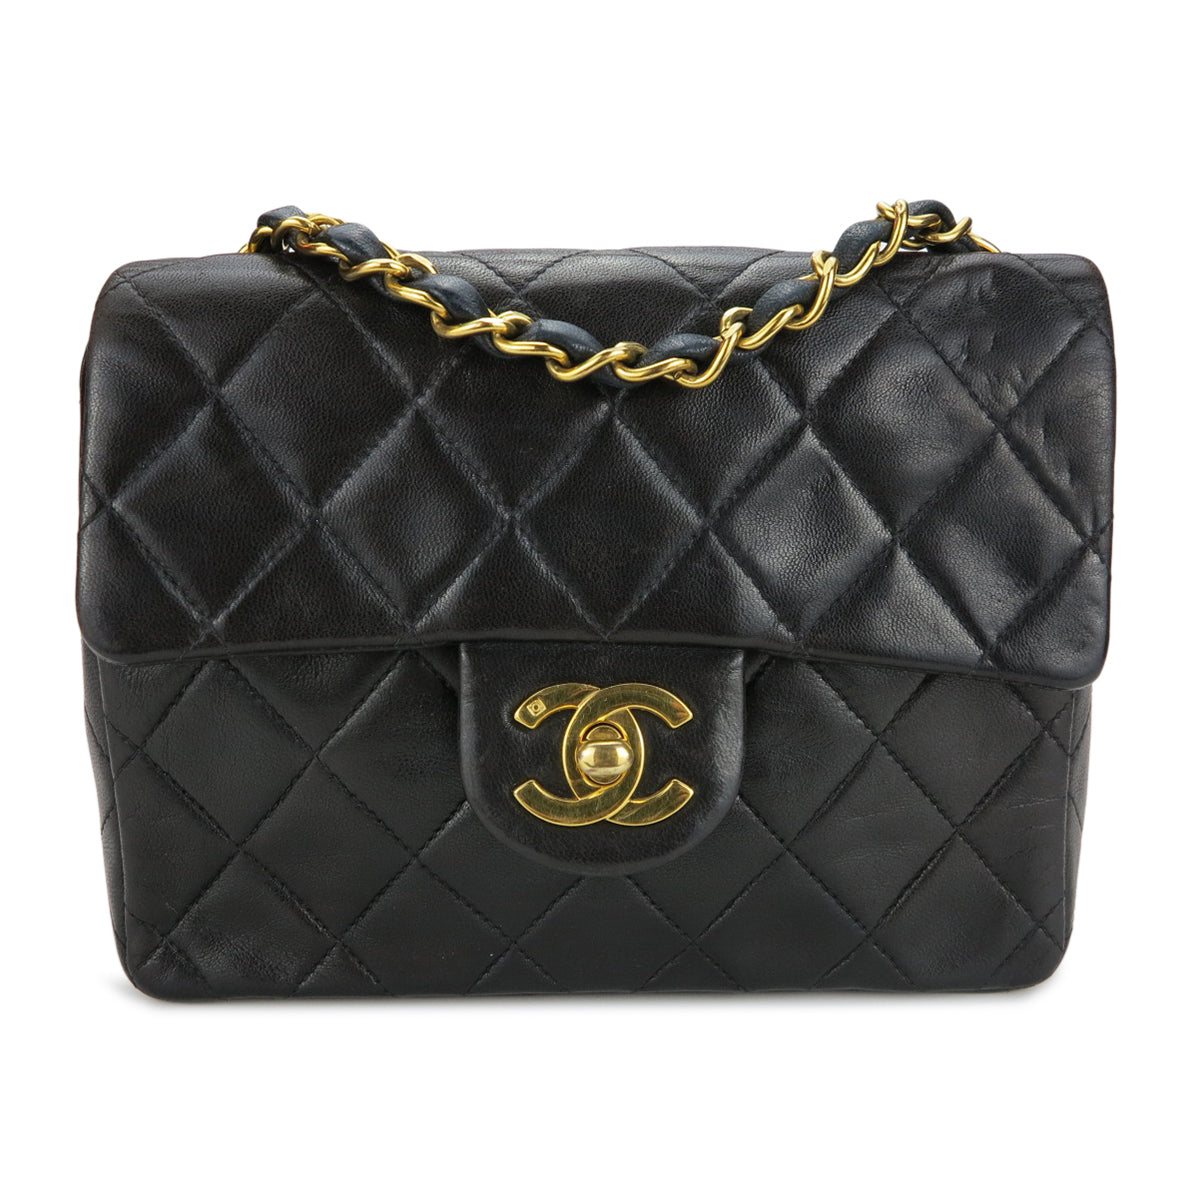 a50cc5984a7930 CHANEL Vintage Classic Mini Square Flap Bag in Black Lambskin -  Dearluxe.com ...